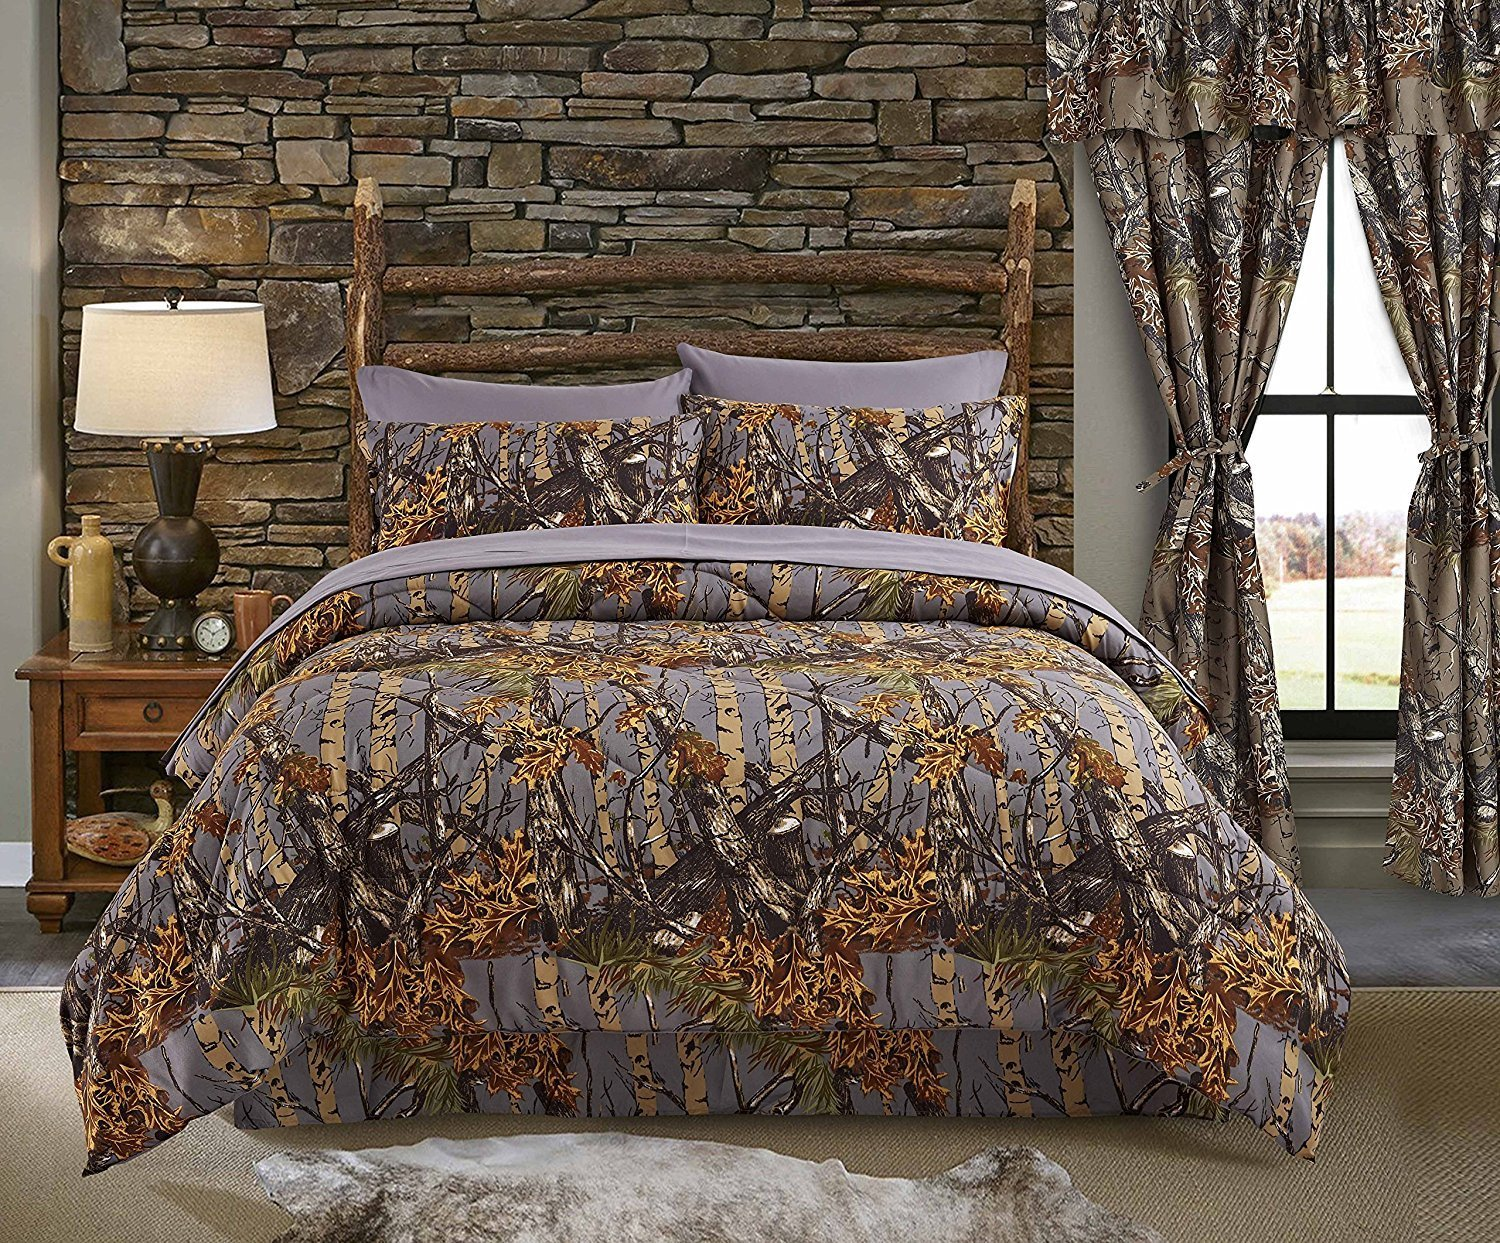 CAMOUFLAGE Comforter Set CAMO Hunting Lodge Gray Green WoodsyBed In A Bag 6-8pc